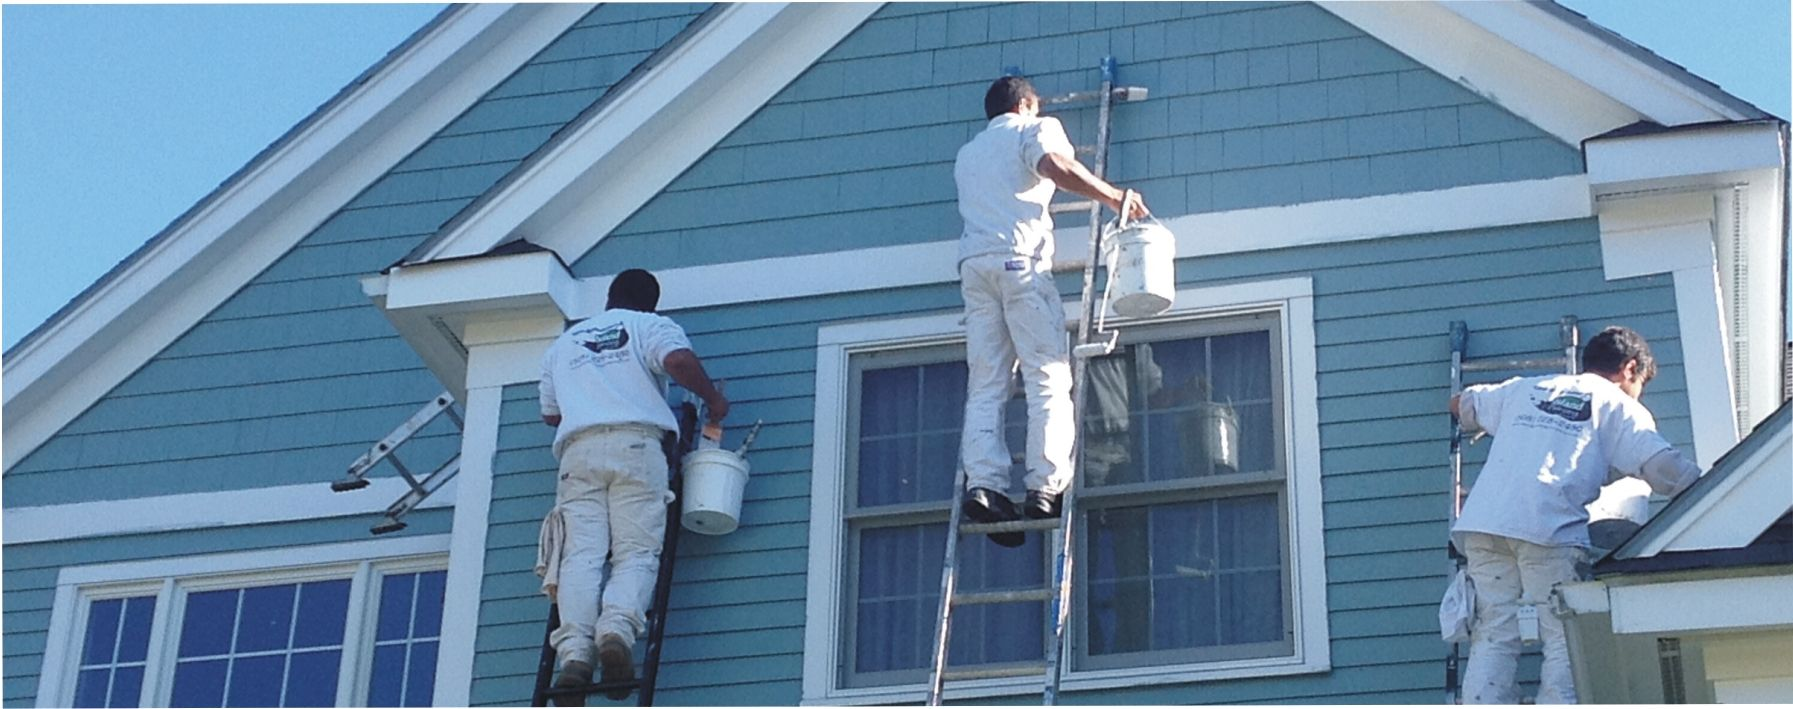 House paint exterior, House painting, Painting services